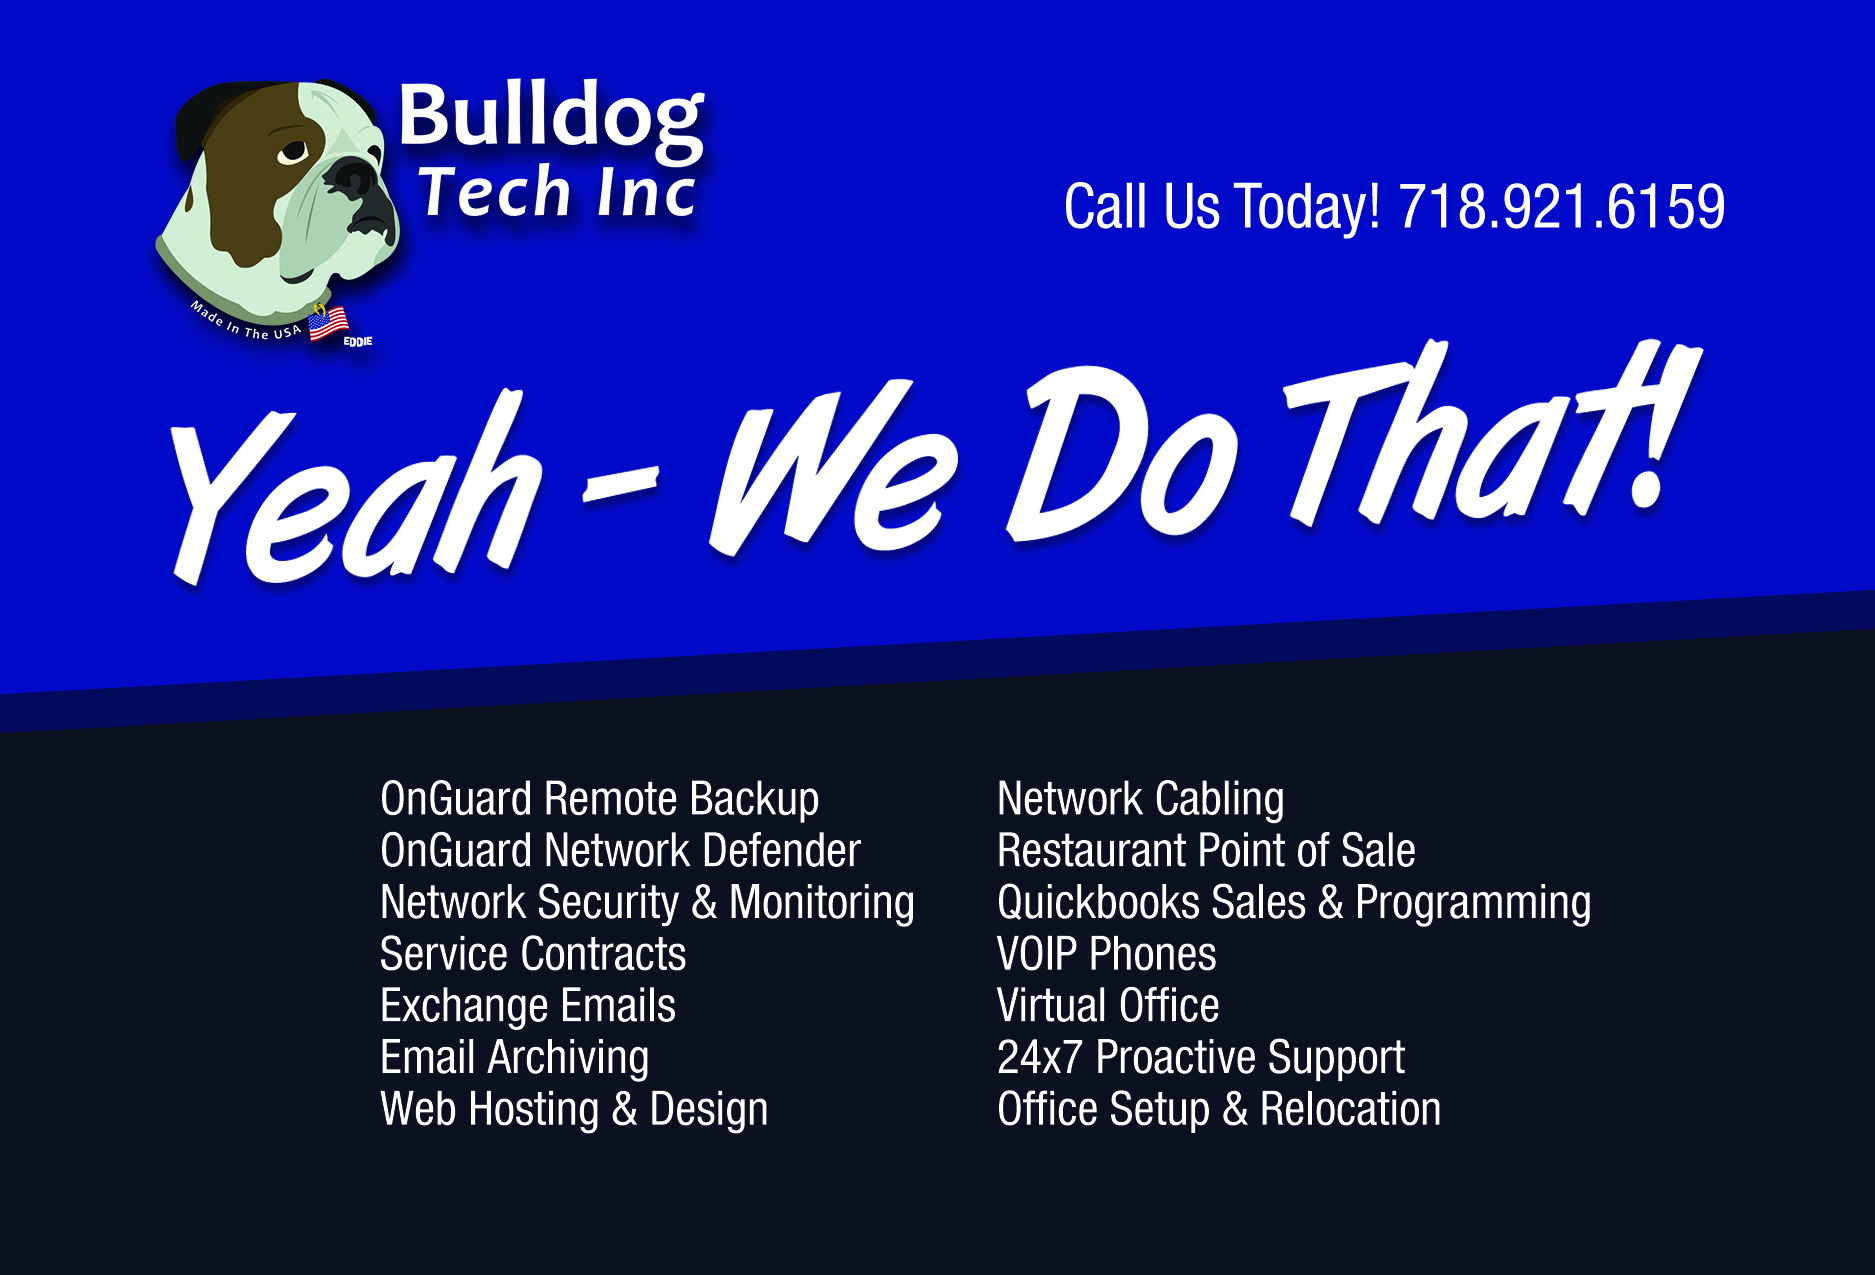 bulldog tech it services include remote backup, network monitoring, service contracts, web hosting and other business services